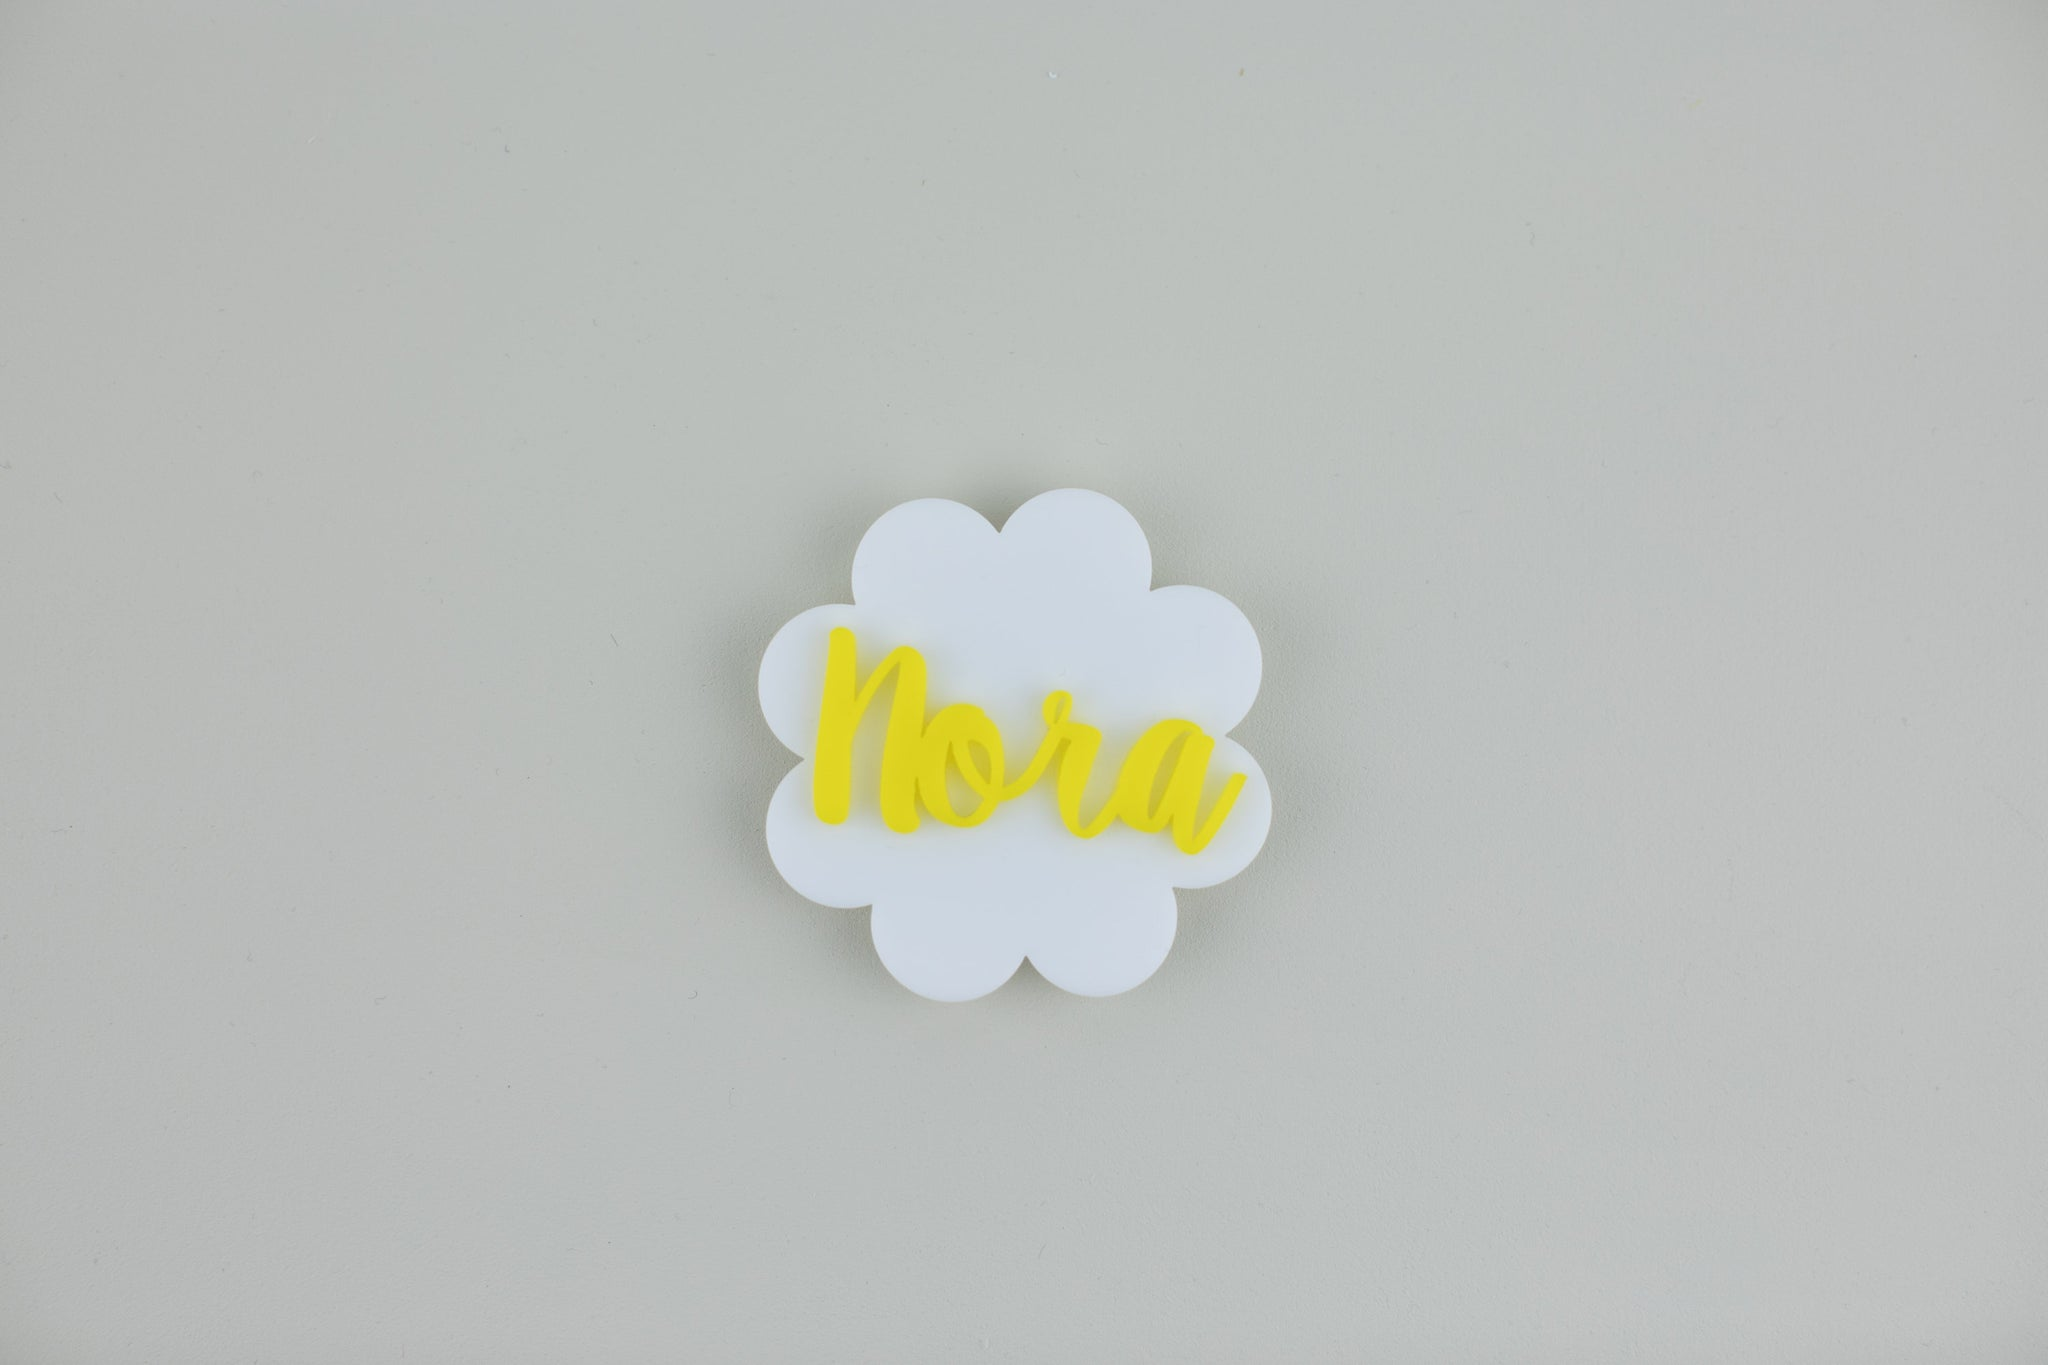 Personalized Daisy Name Tag, Acrylic Name Tag, Personalized Name Tag, Magnetic Name Tag, Kids Name Tag, Mother's Day